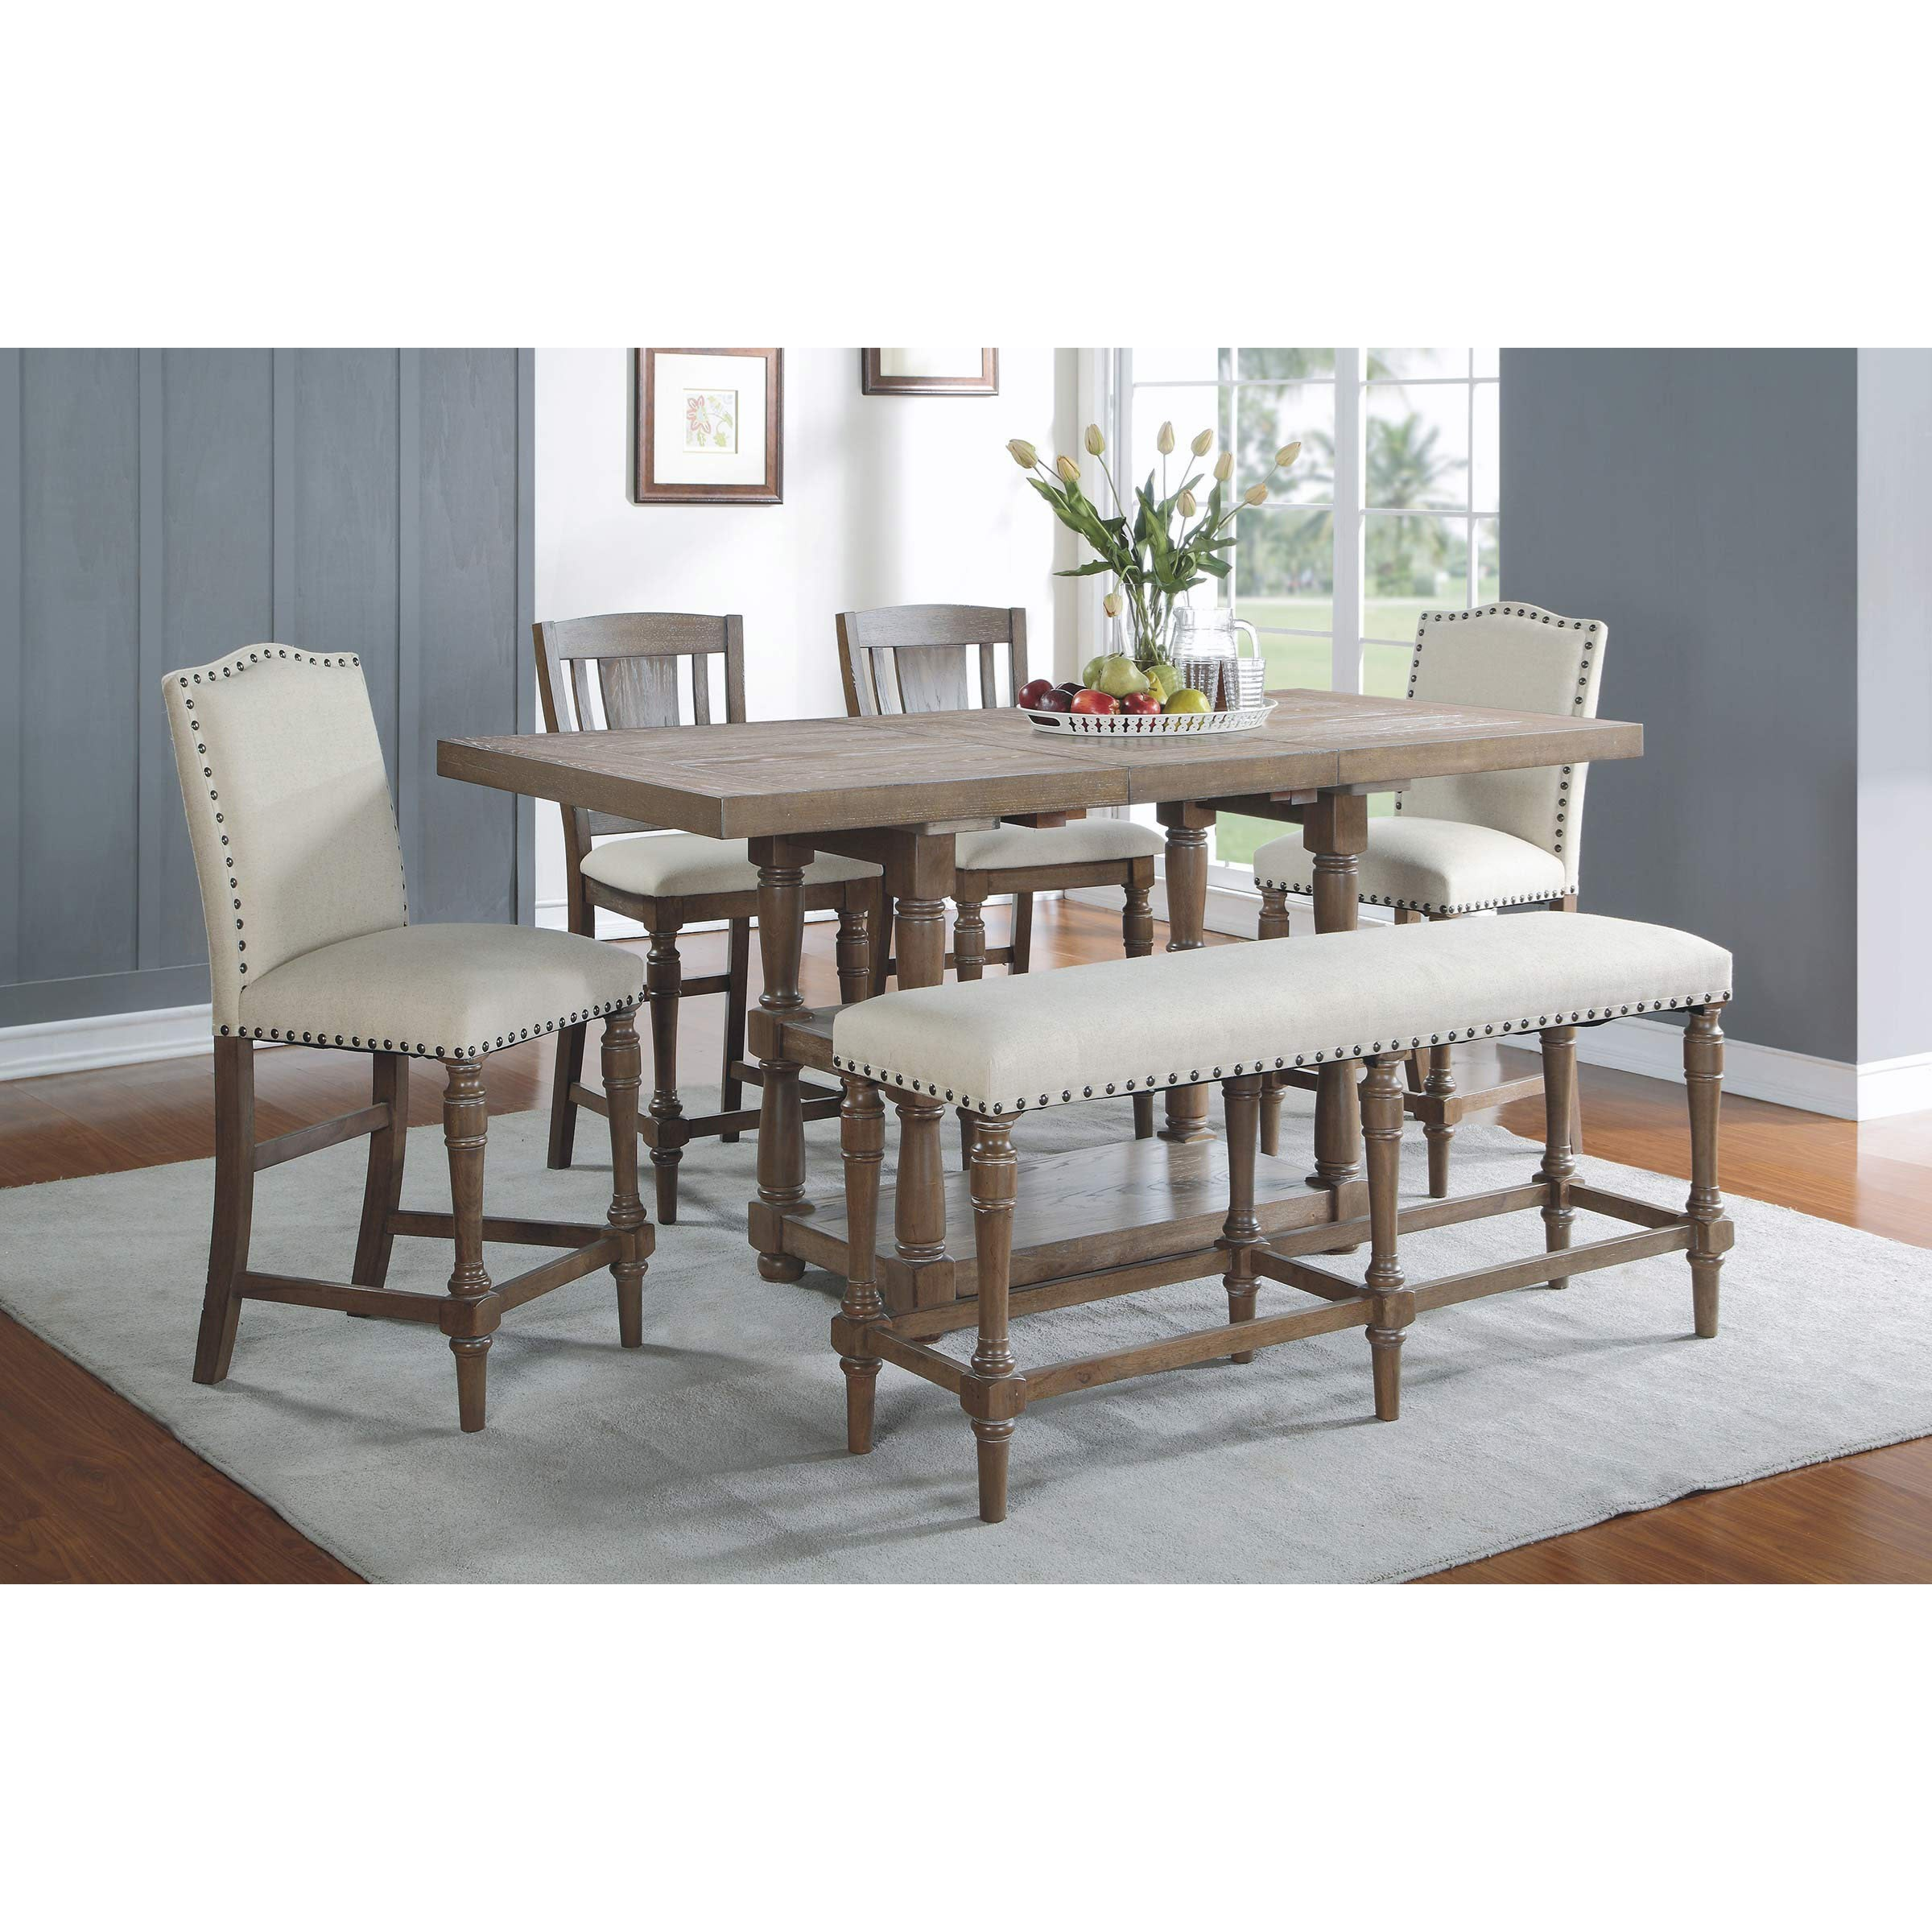 Xcalibur Counter Height Dining Set by Winners Only at Dunk & Bright Furniture